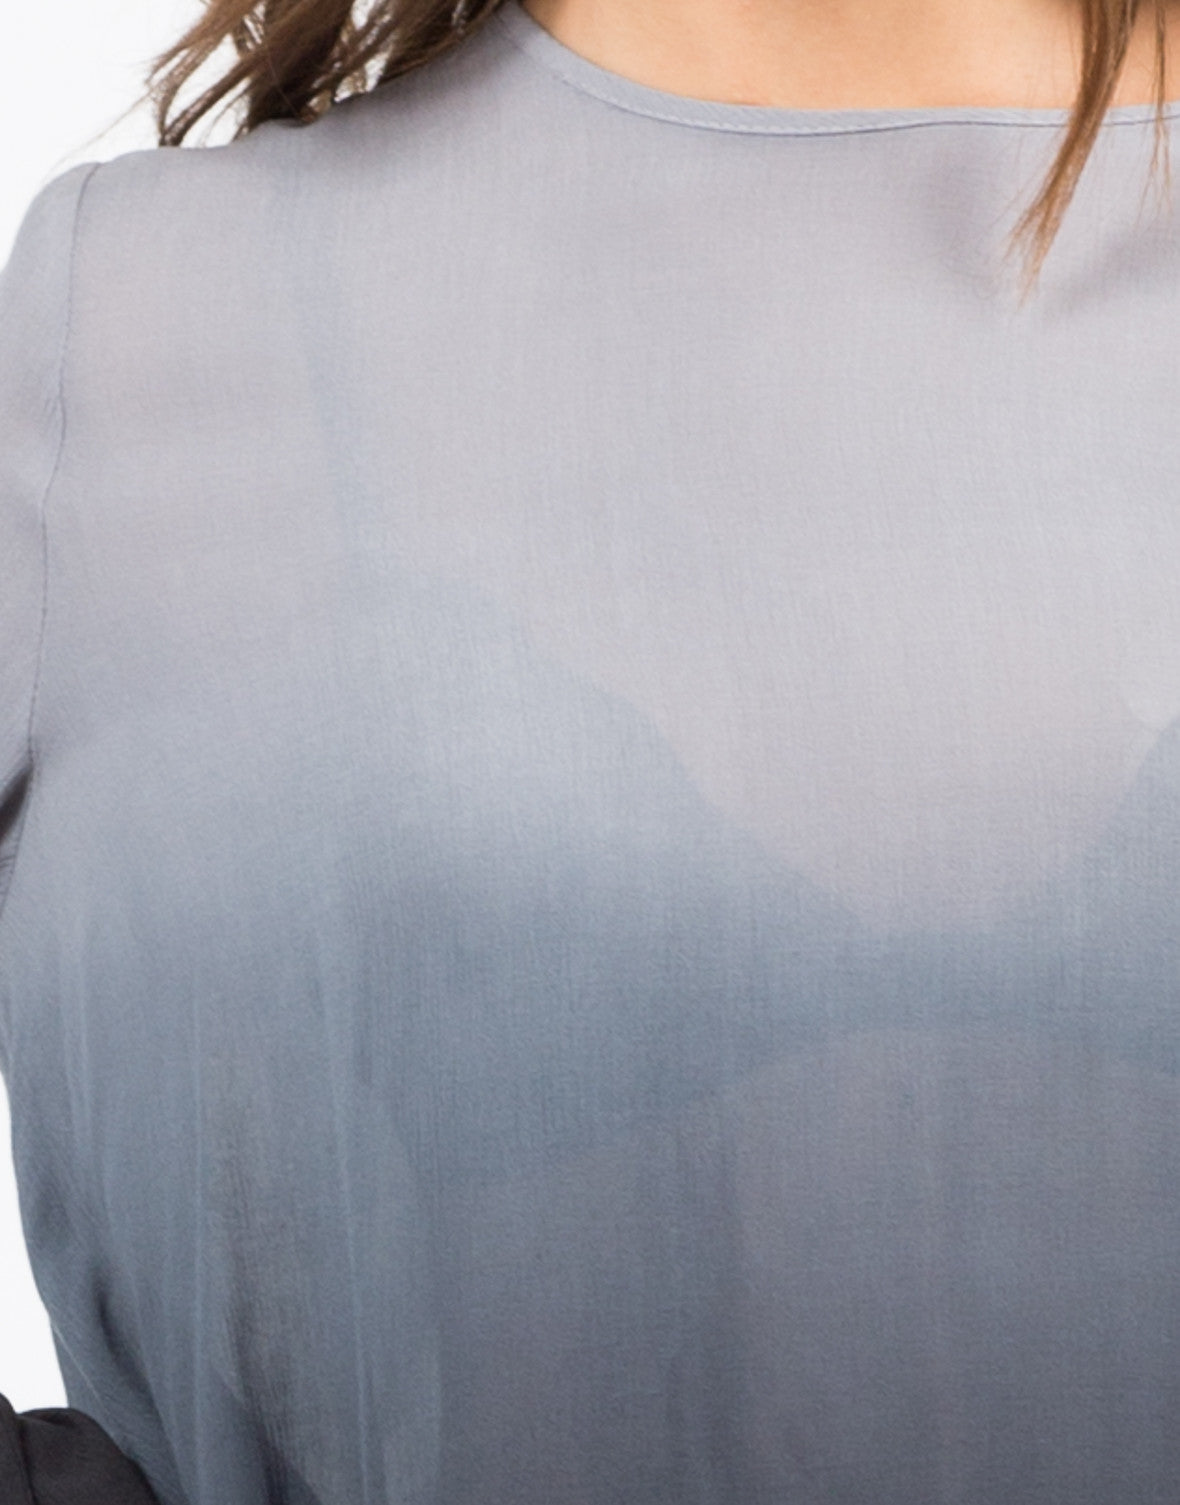 Detail of Ombre Tunic Blouse